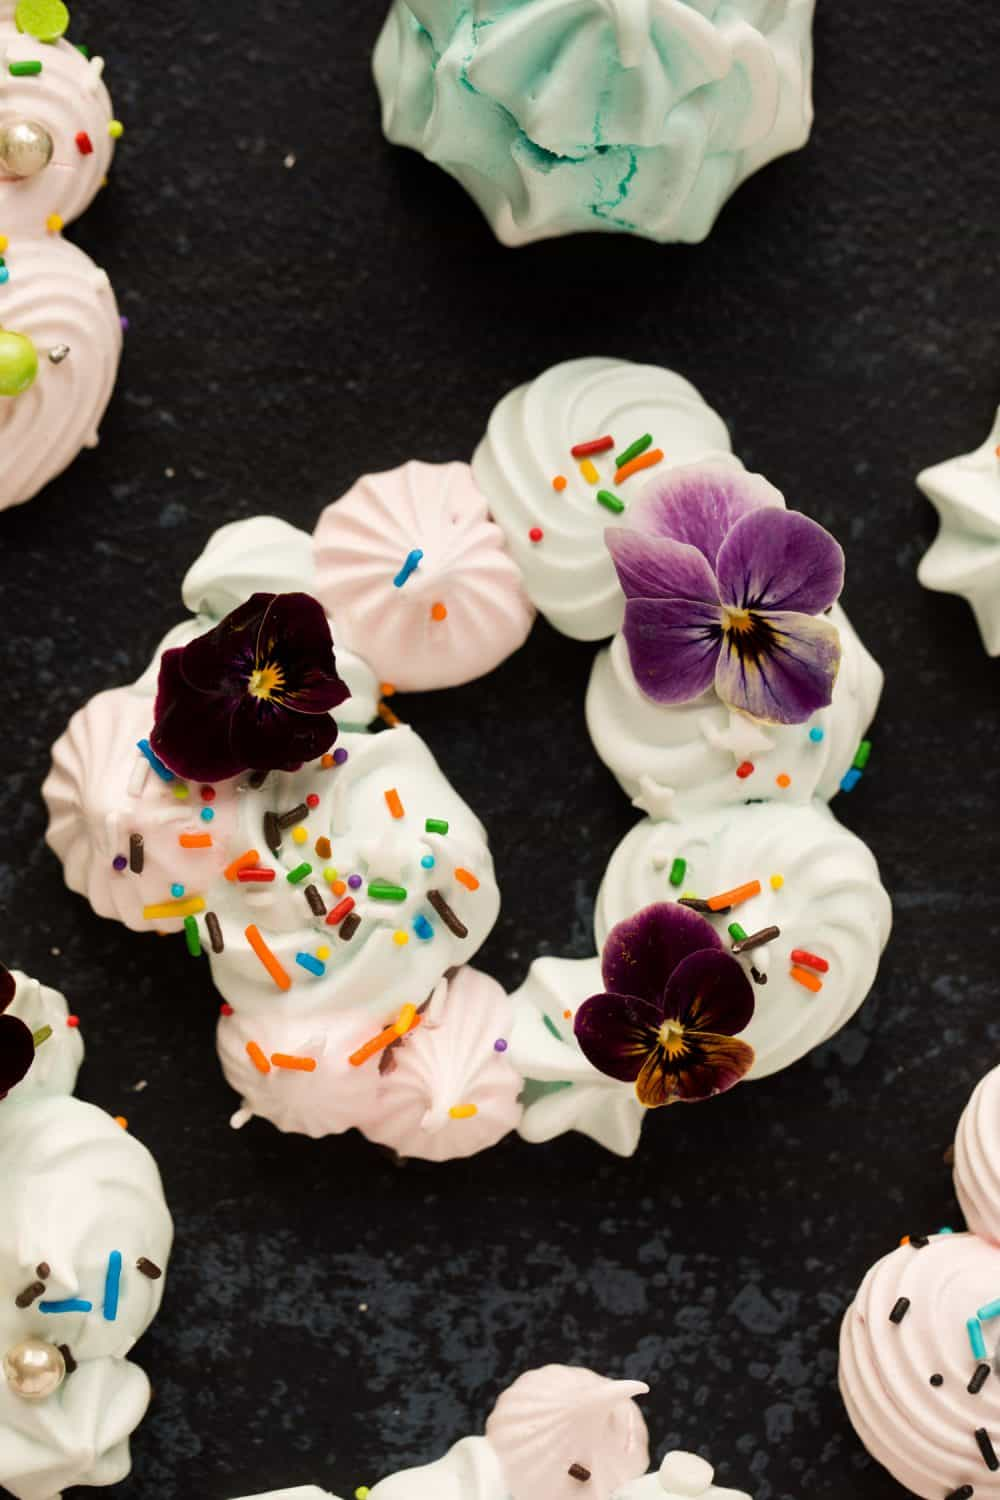 A small Christmas Meringue Wreath with edible flowers as decoration.